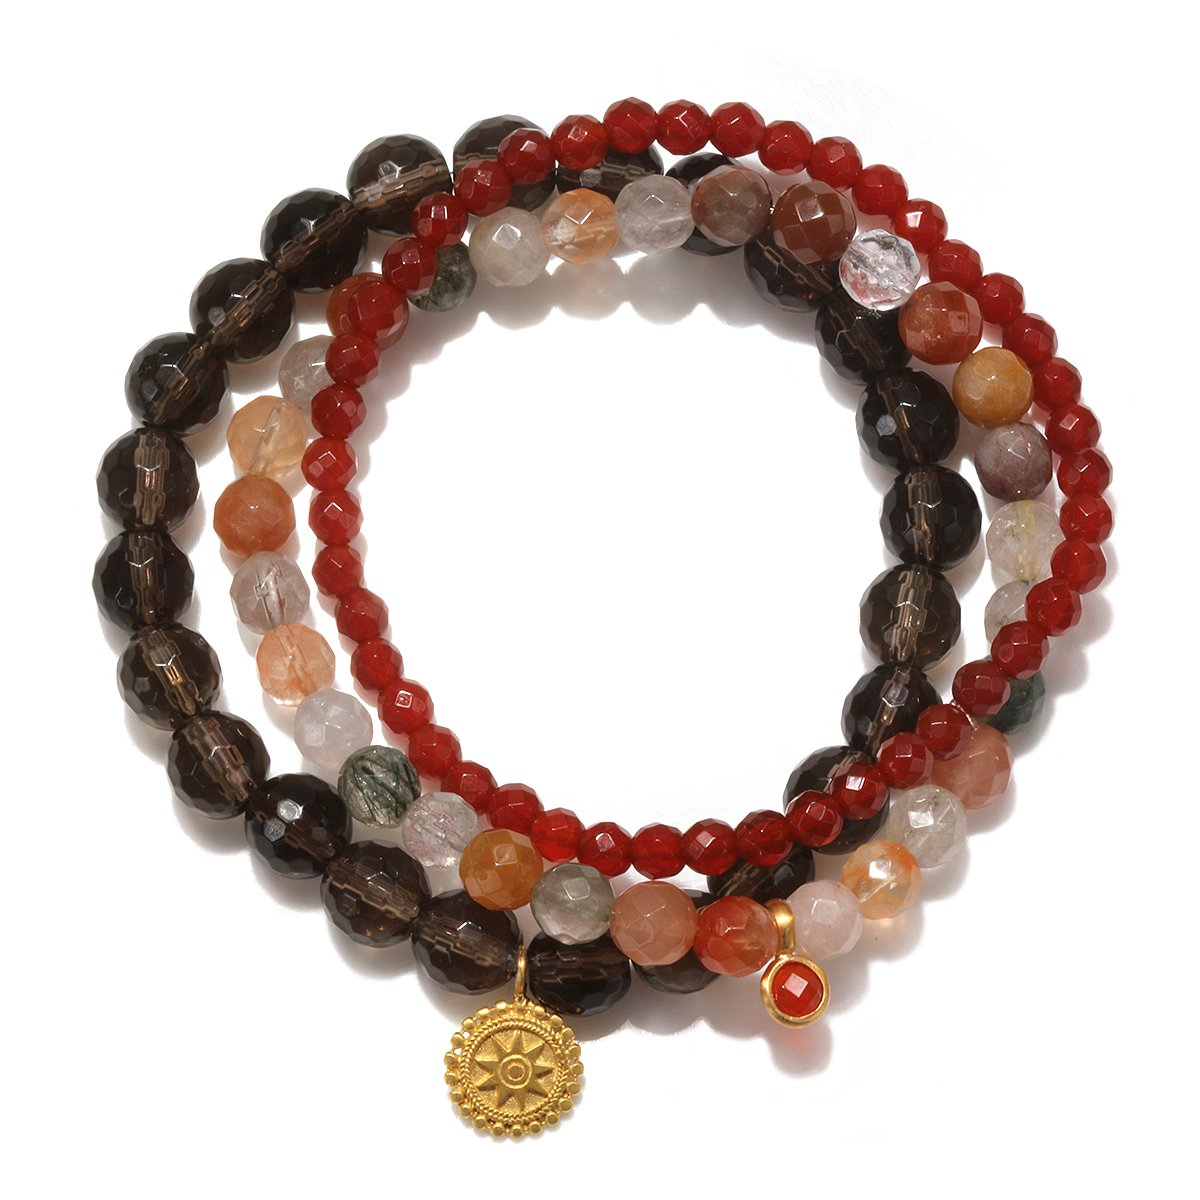 Satya Jewelry Smokey & Rutilated Quartz, Carnelian Gold Plate Mandala Stretch Bracelet by Satya Jewelry